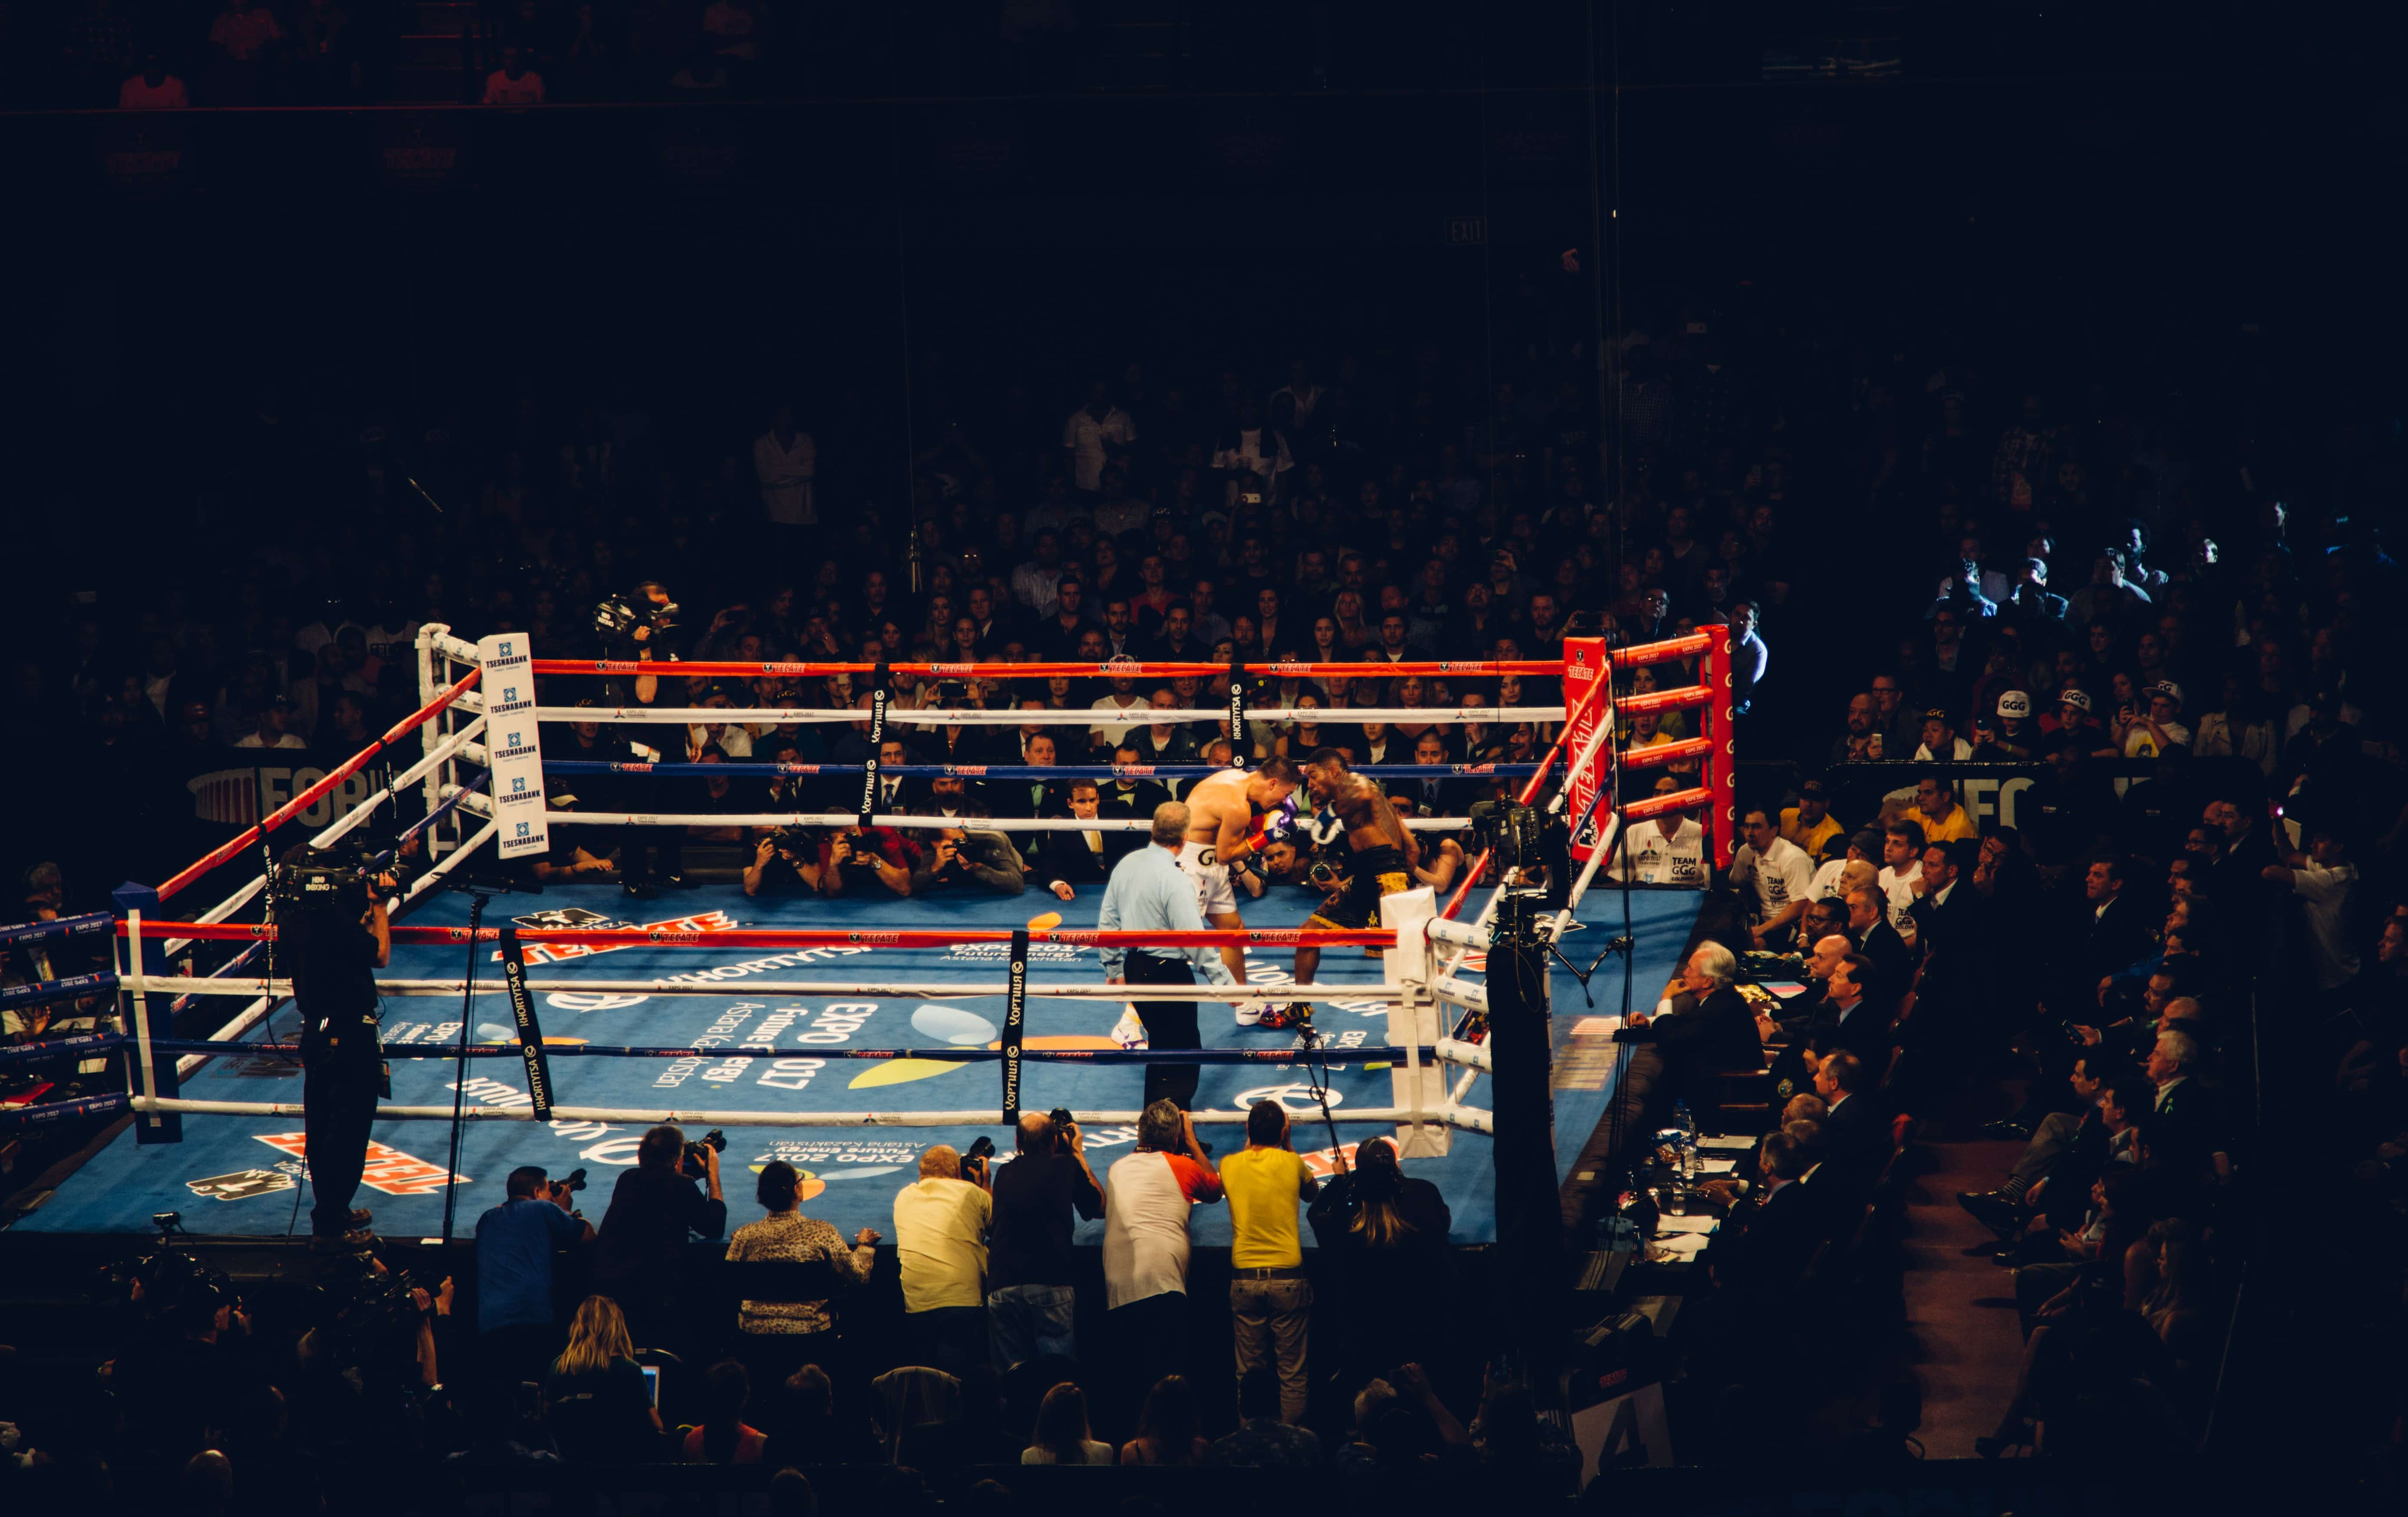 Your greatest enemy will help you find your purpose - boxing image